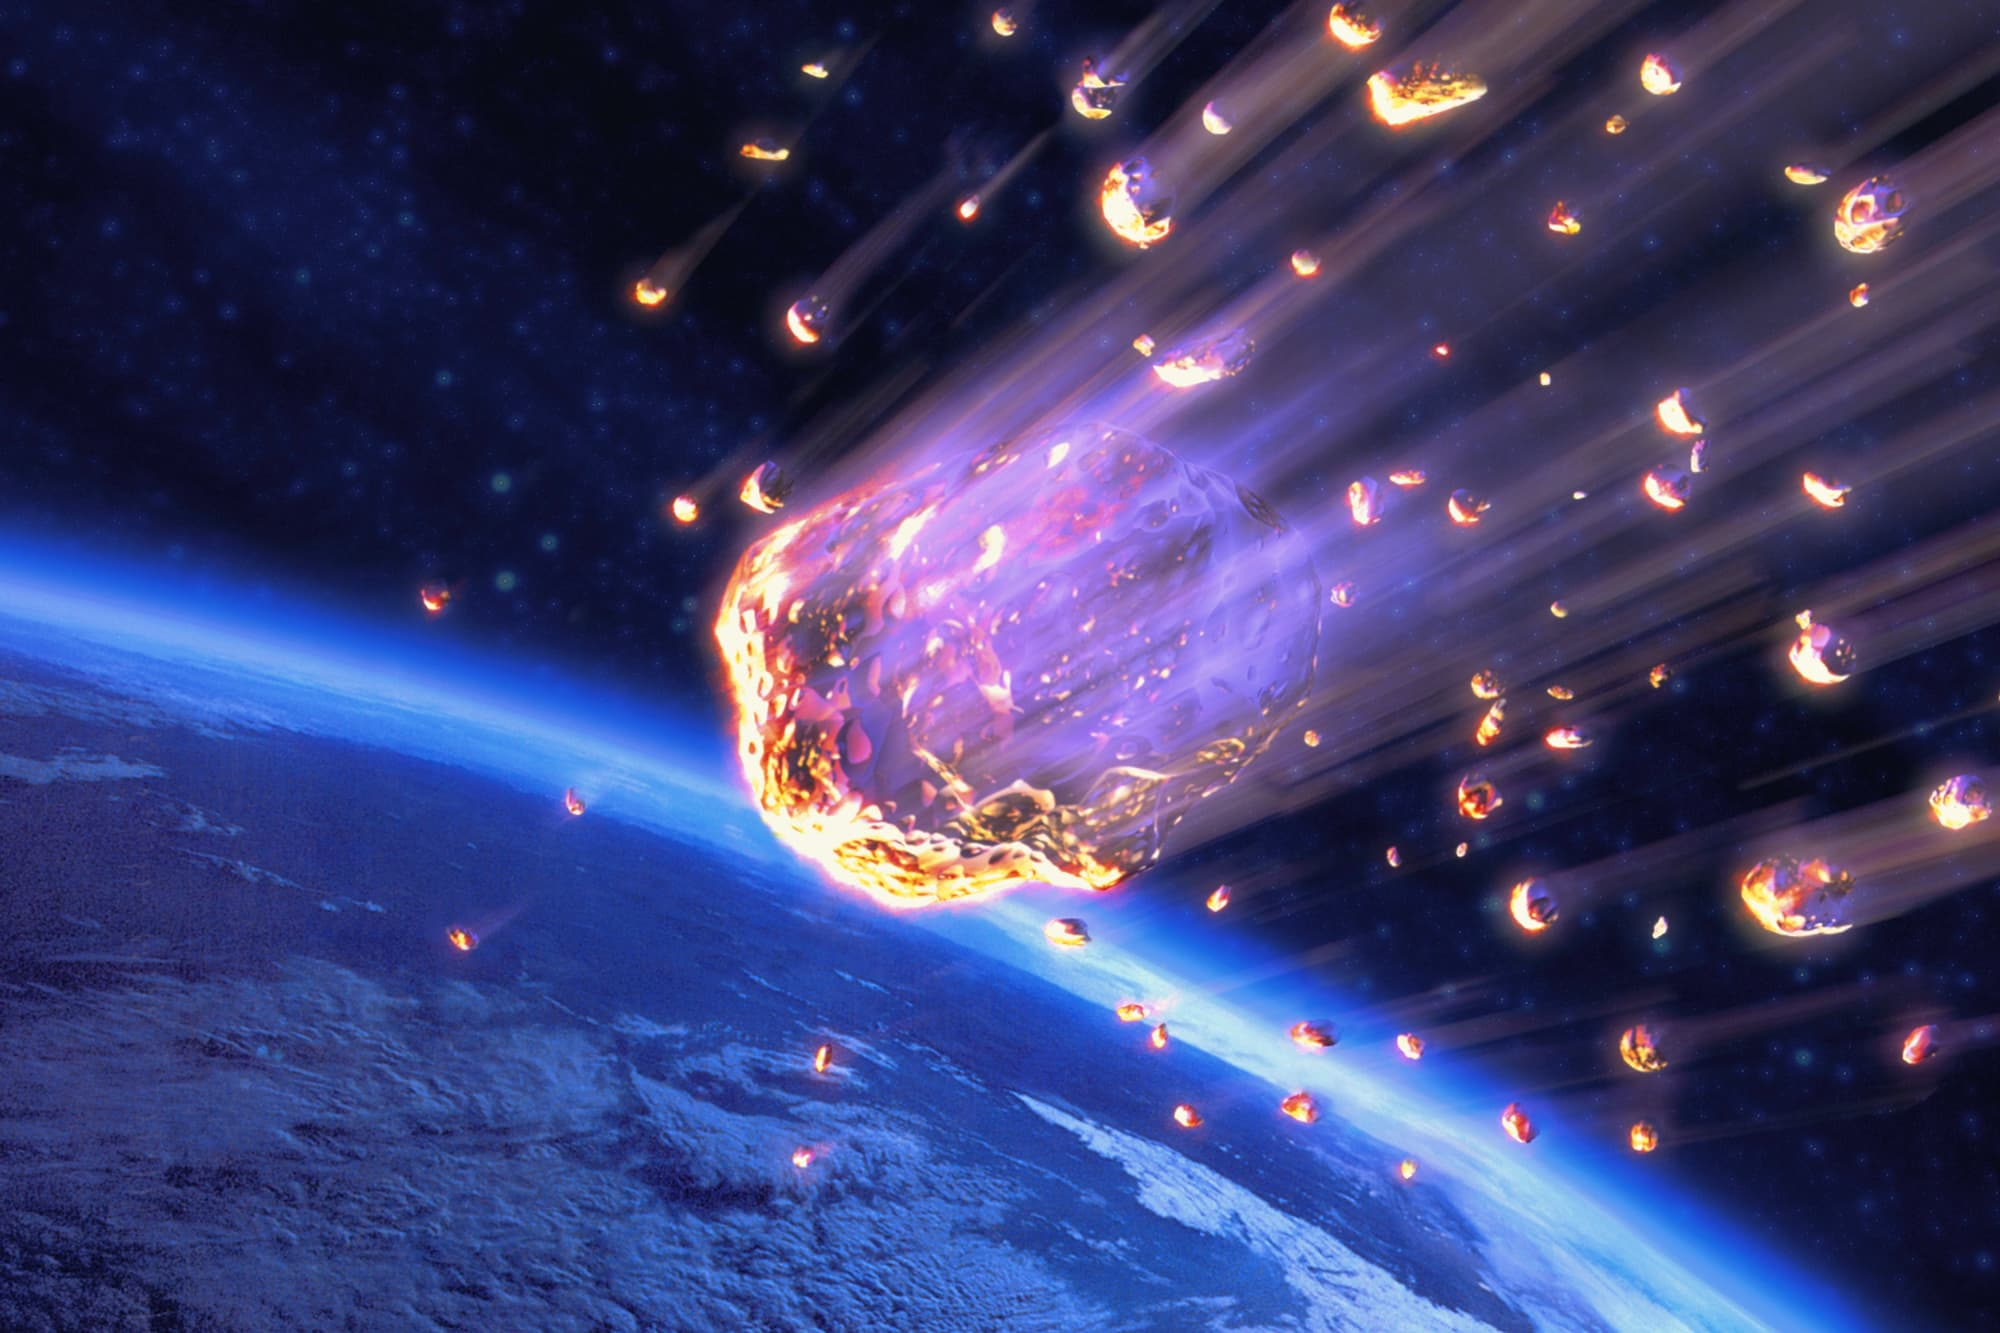 Threat to earth posed by meteors must be taken seriously, NASA warns